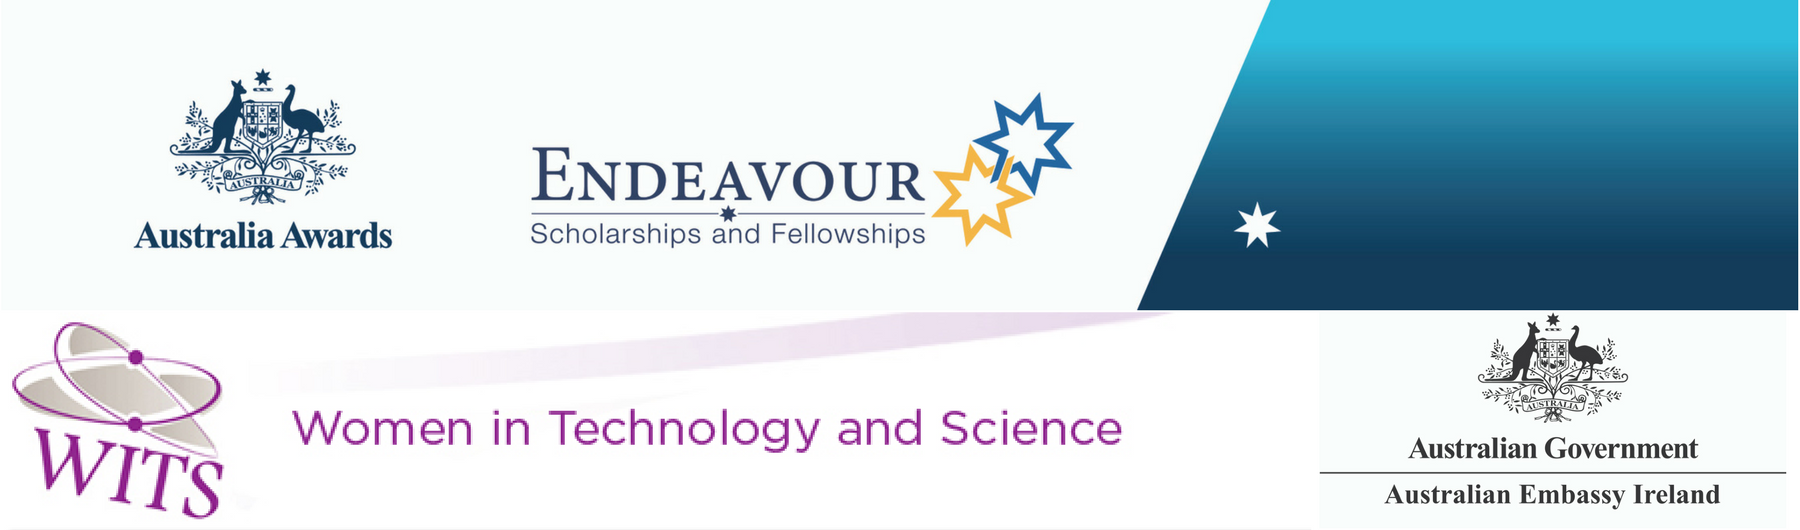 WITS Ireland & Australian Embassy - Endeavour Scholarship Information Evening - 27 March, 6:30pm